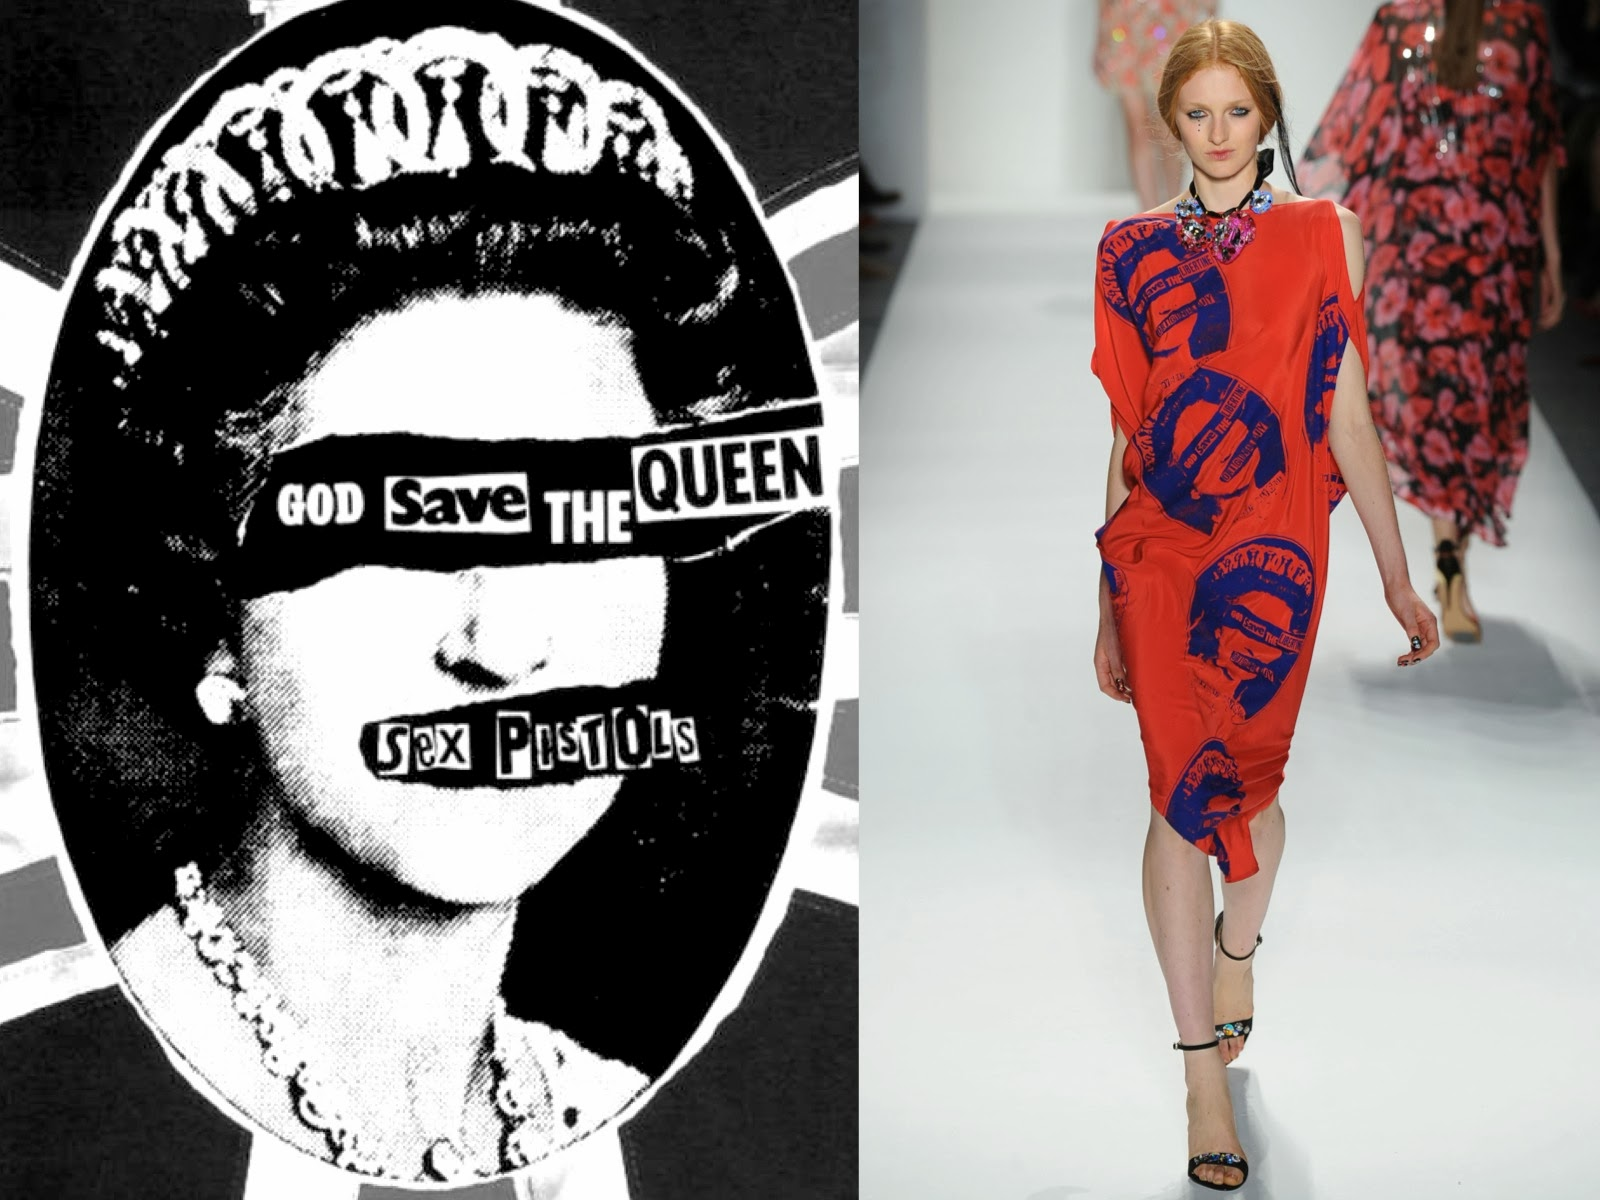 Into The Fashion Inspiration Sex Pistols God Save The Queen 1977